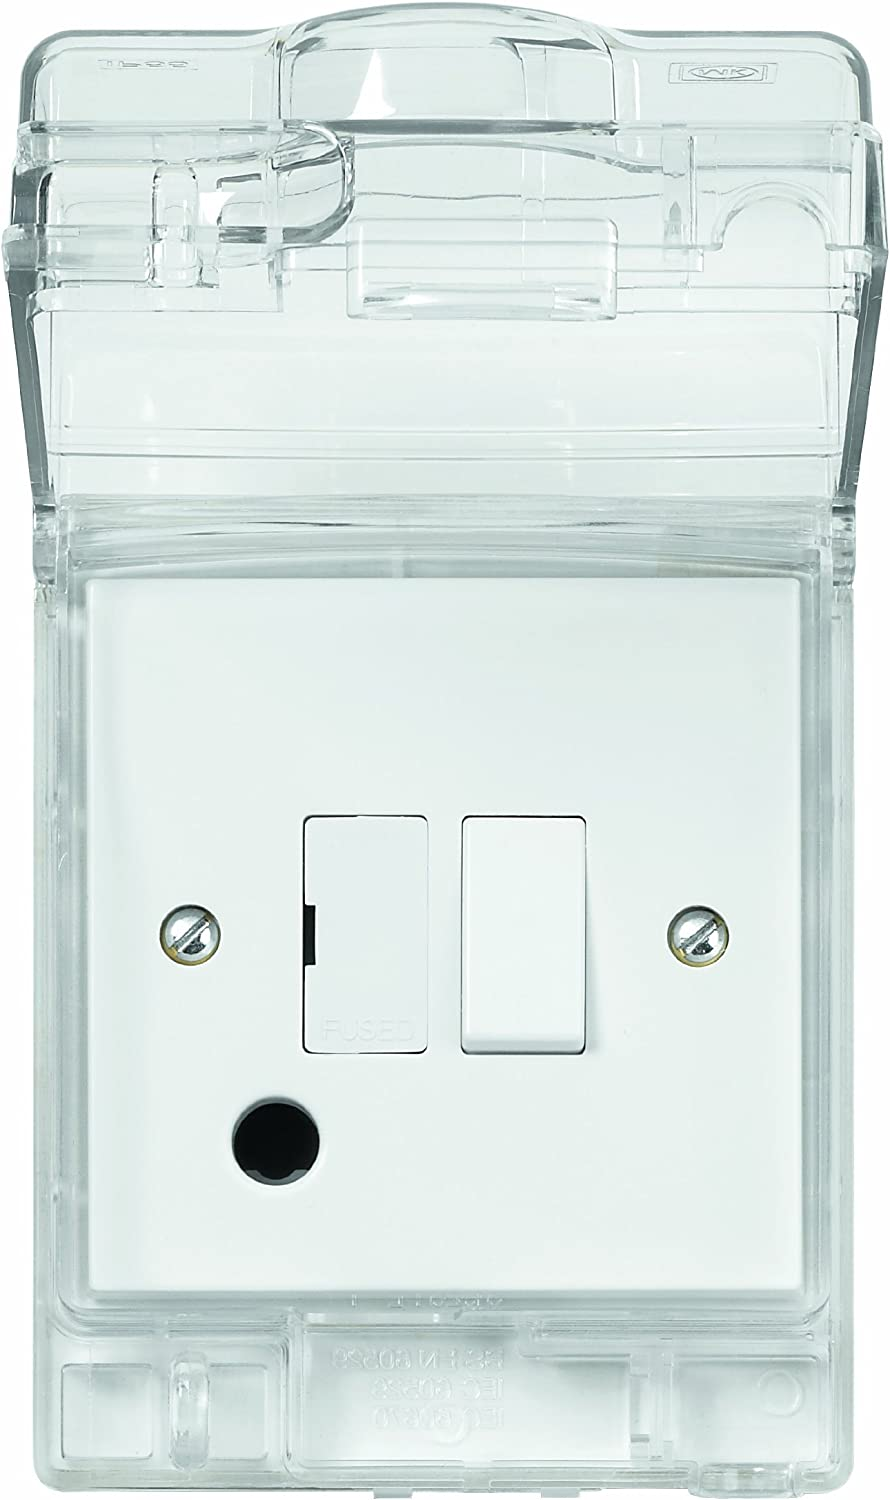 Weatherproof IP55 Rated 13A Outdoor Fused Connection Unit FCU